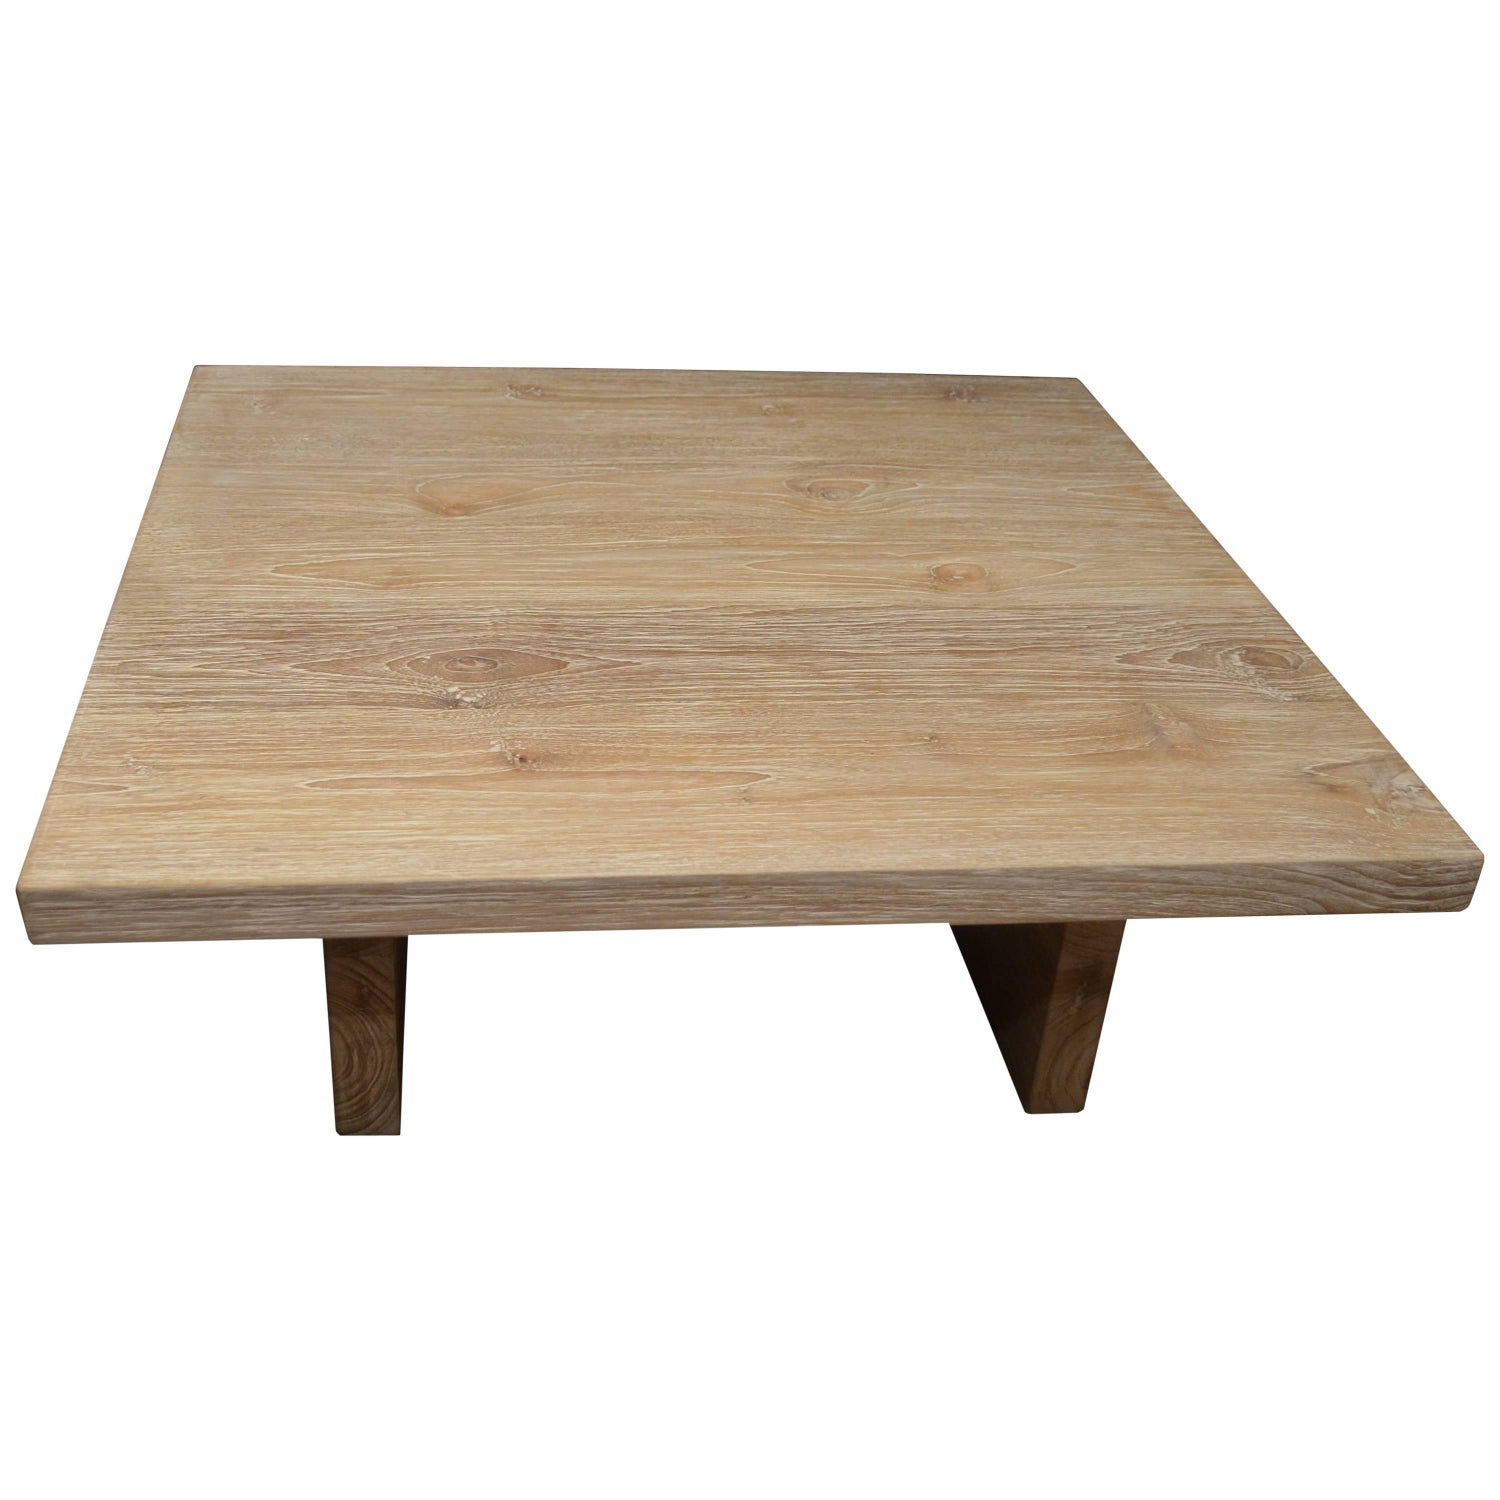 Simple Minimalist Coffee Table with Striated Wood Veneer at 1stdibs